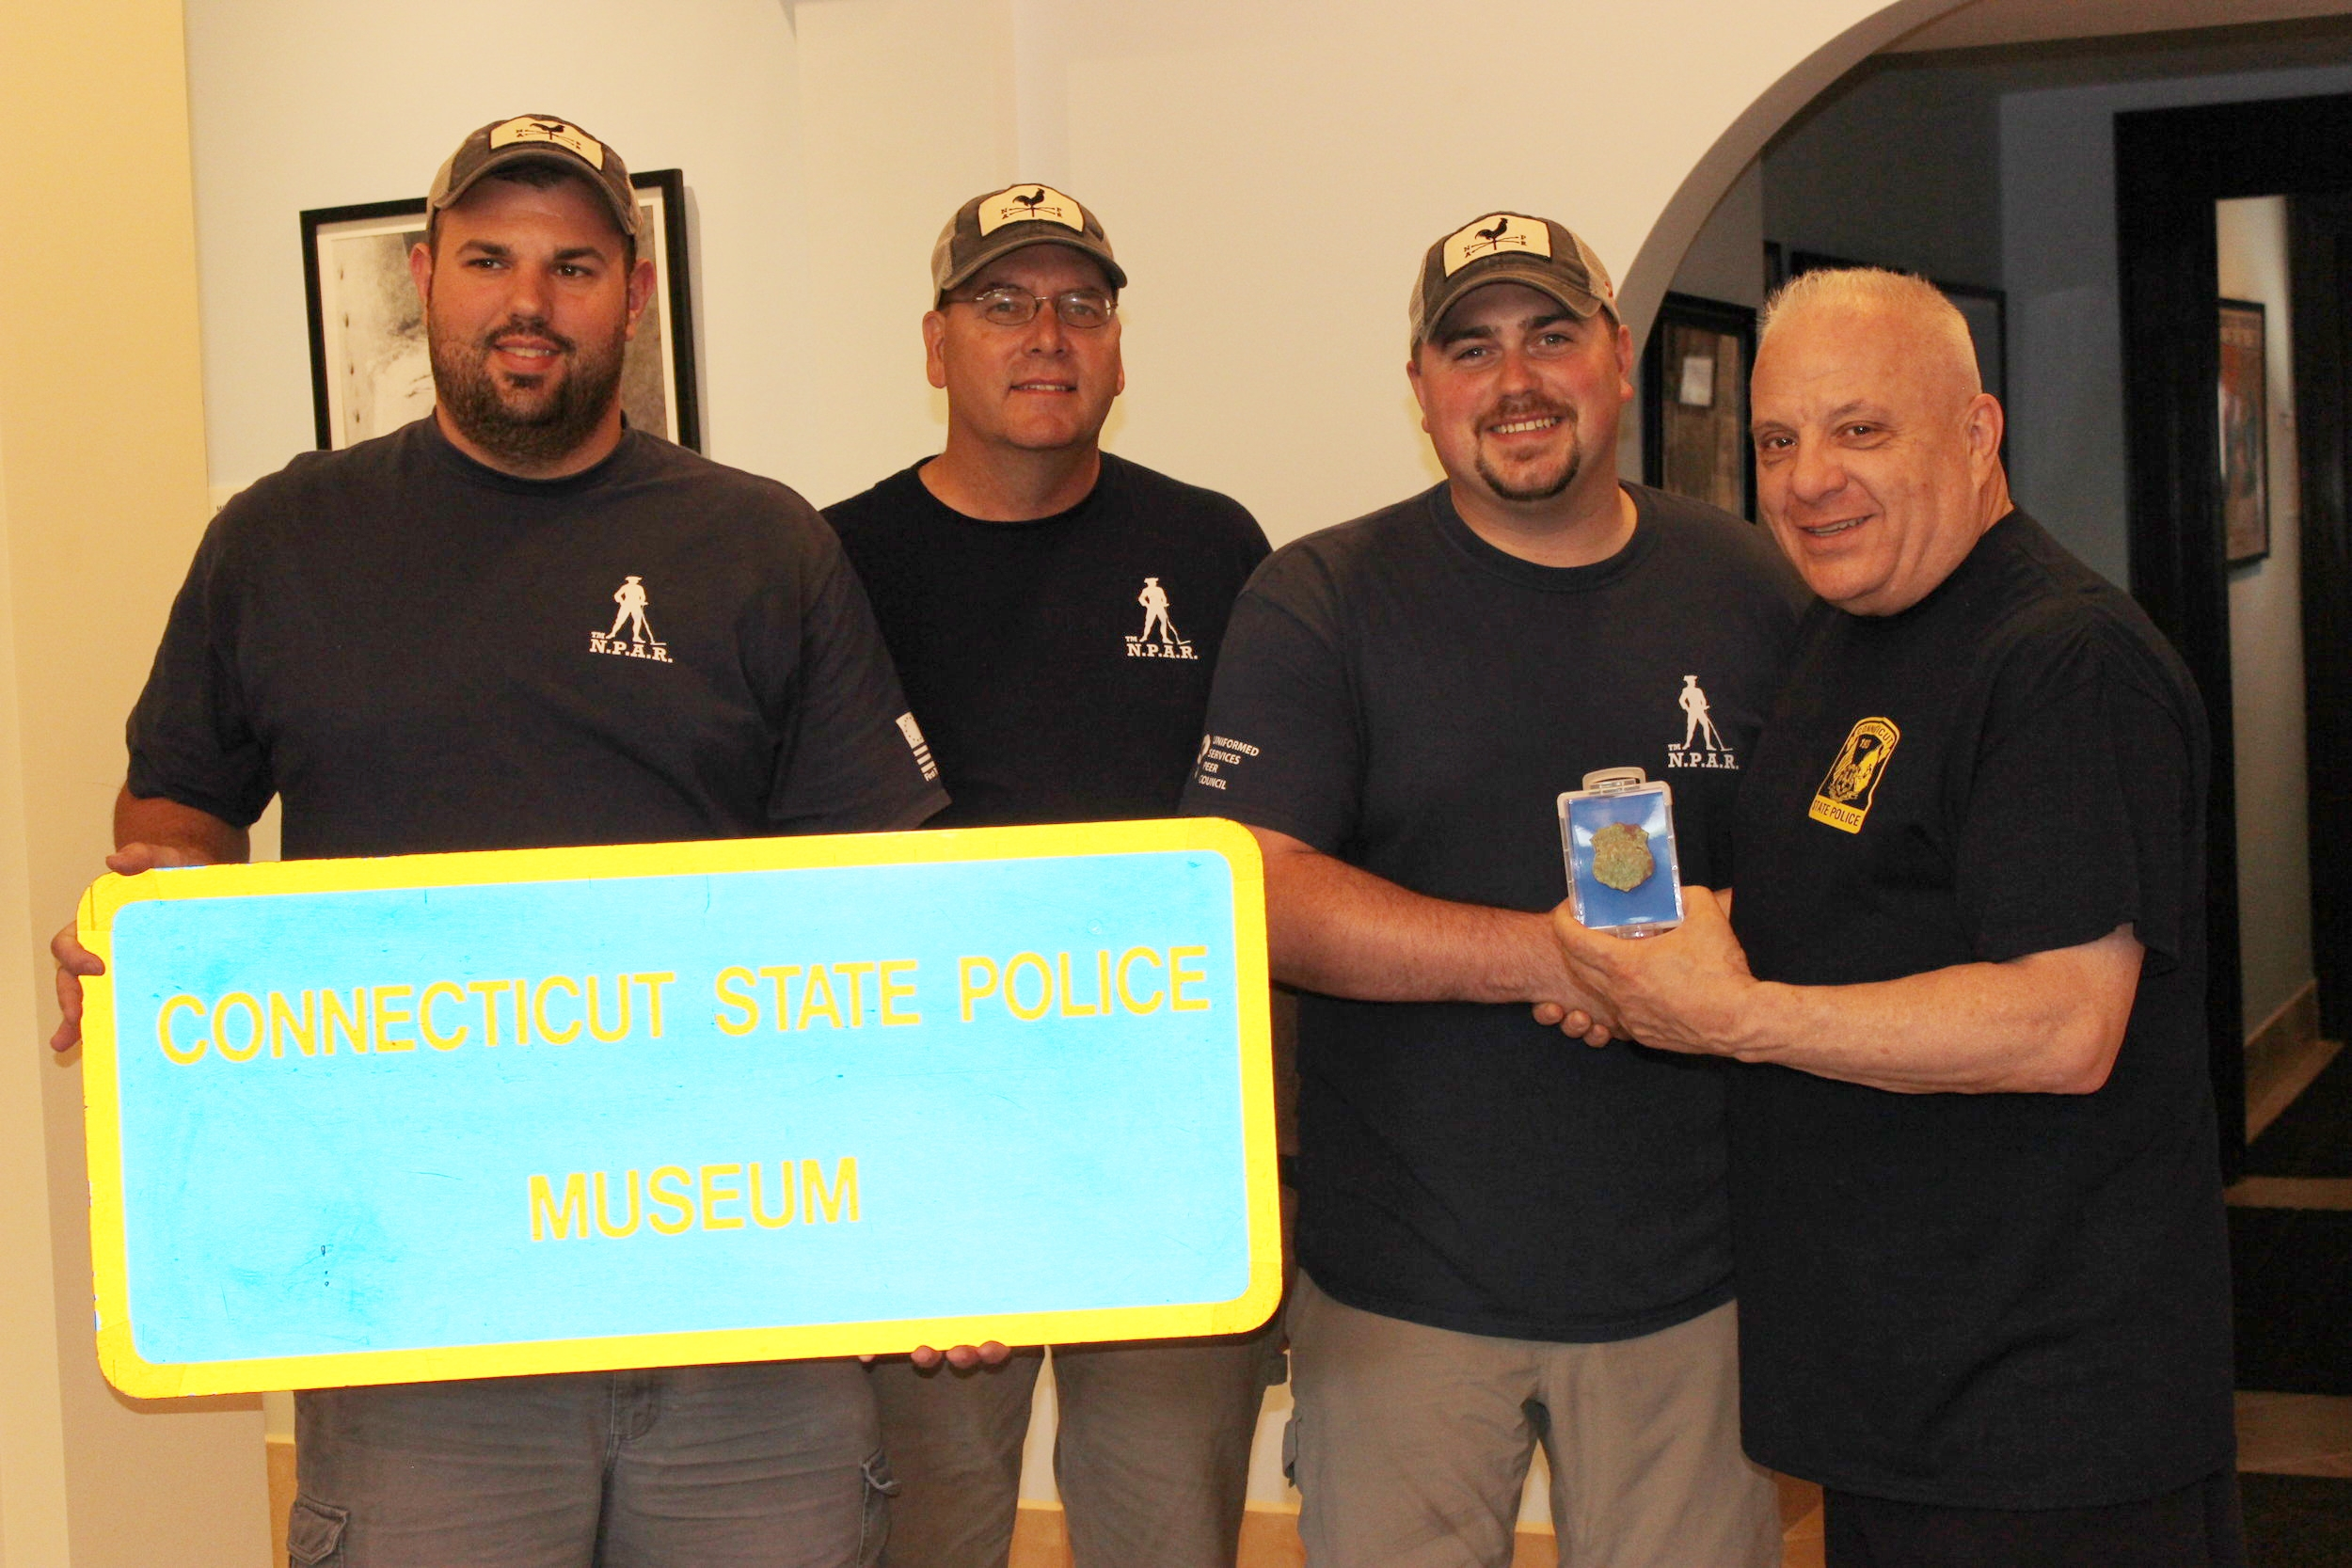 mission accomplished ! - June 30th 2018, Team N.P.A.R. was fortunate enough to get our first piece of recovered History into the Connecticut State Police Museum. It was a Honor meeting Jerry Longo a retired Connecticut State Trooper, and Director of the Museum. Being First Responders saving Emergency Service History is important to us. This was a big goal of ours and I can't thank Mr. Longo and my Team enough for this accomplishment. (Jerry Longo seen on the right of photo receiving the badge) (Deputy Warden Badge seen in photo above)